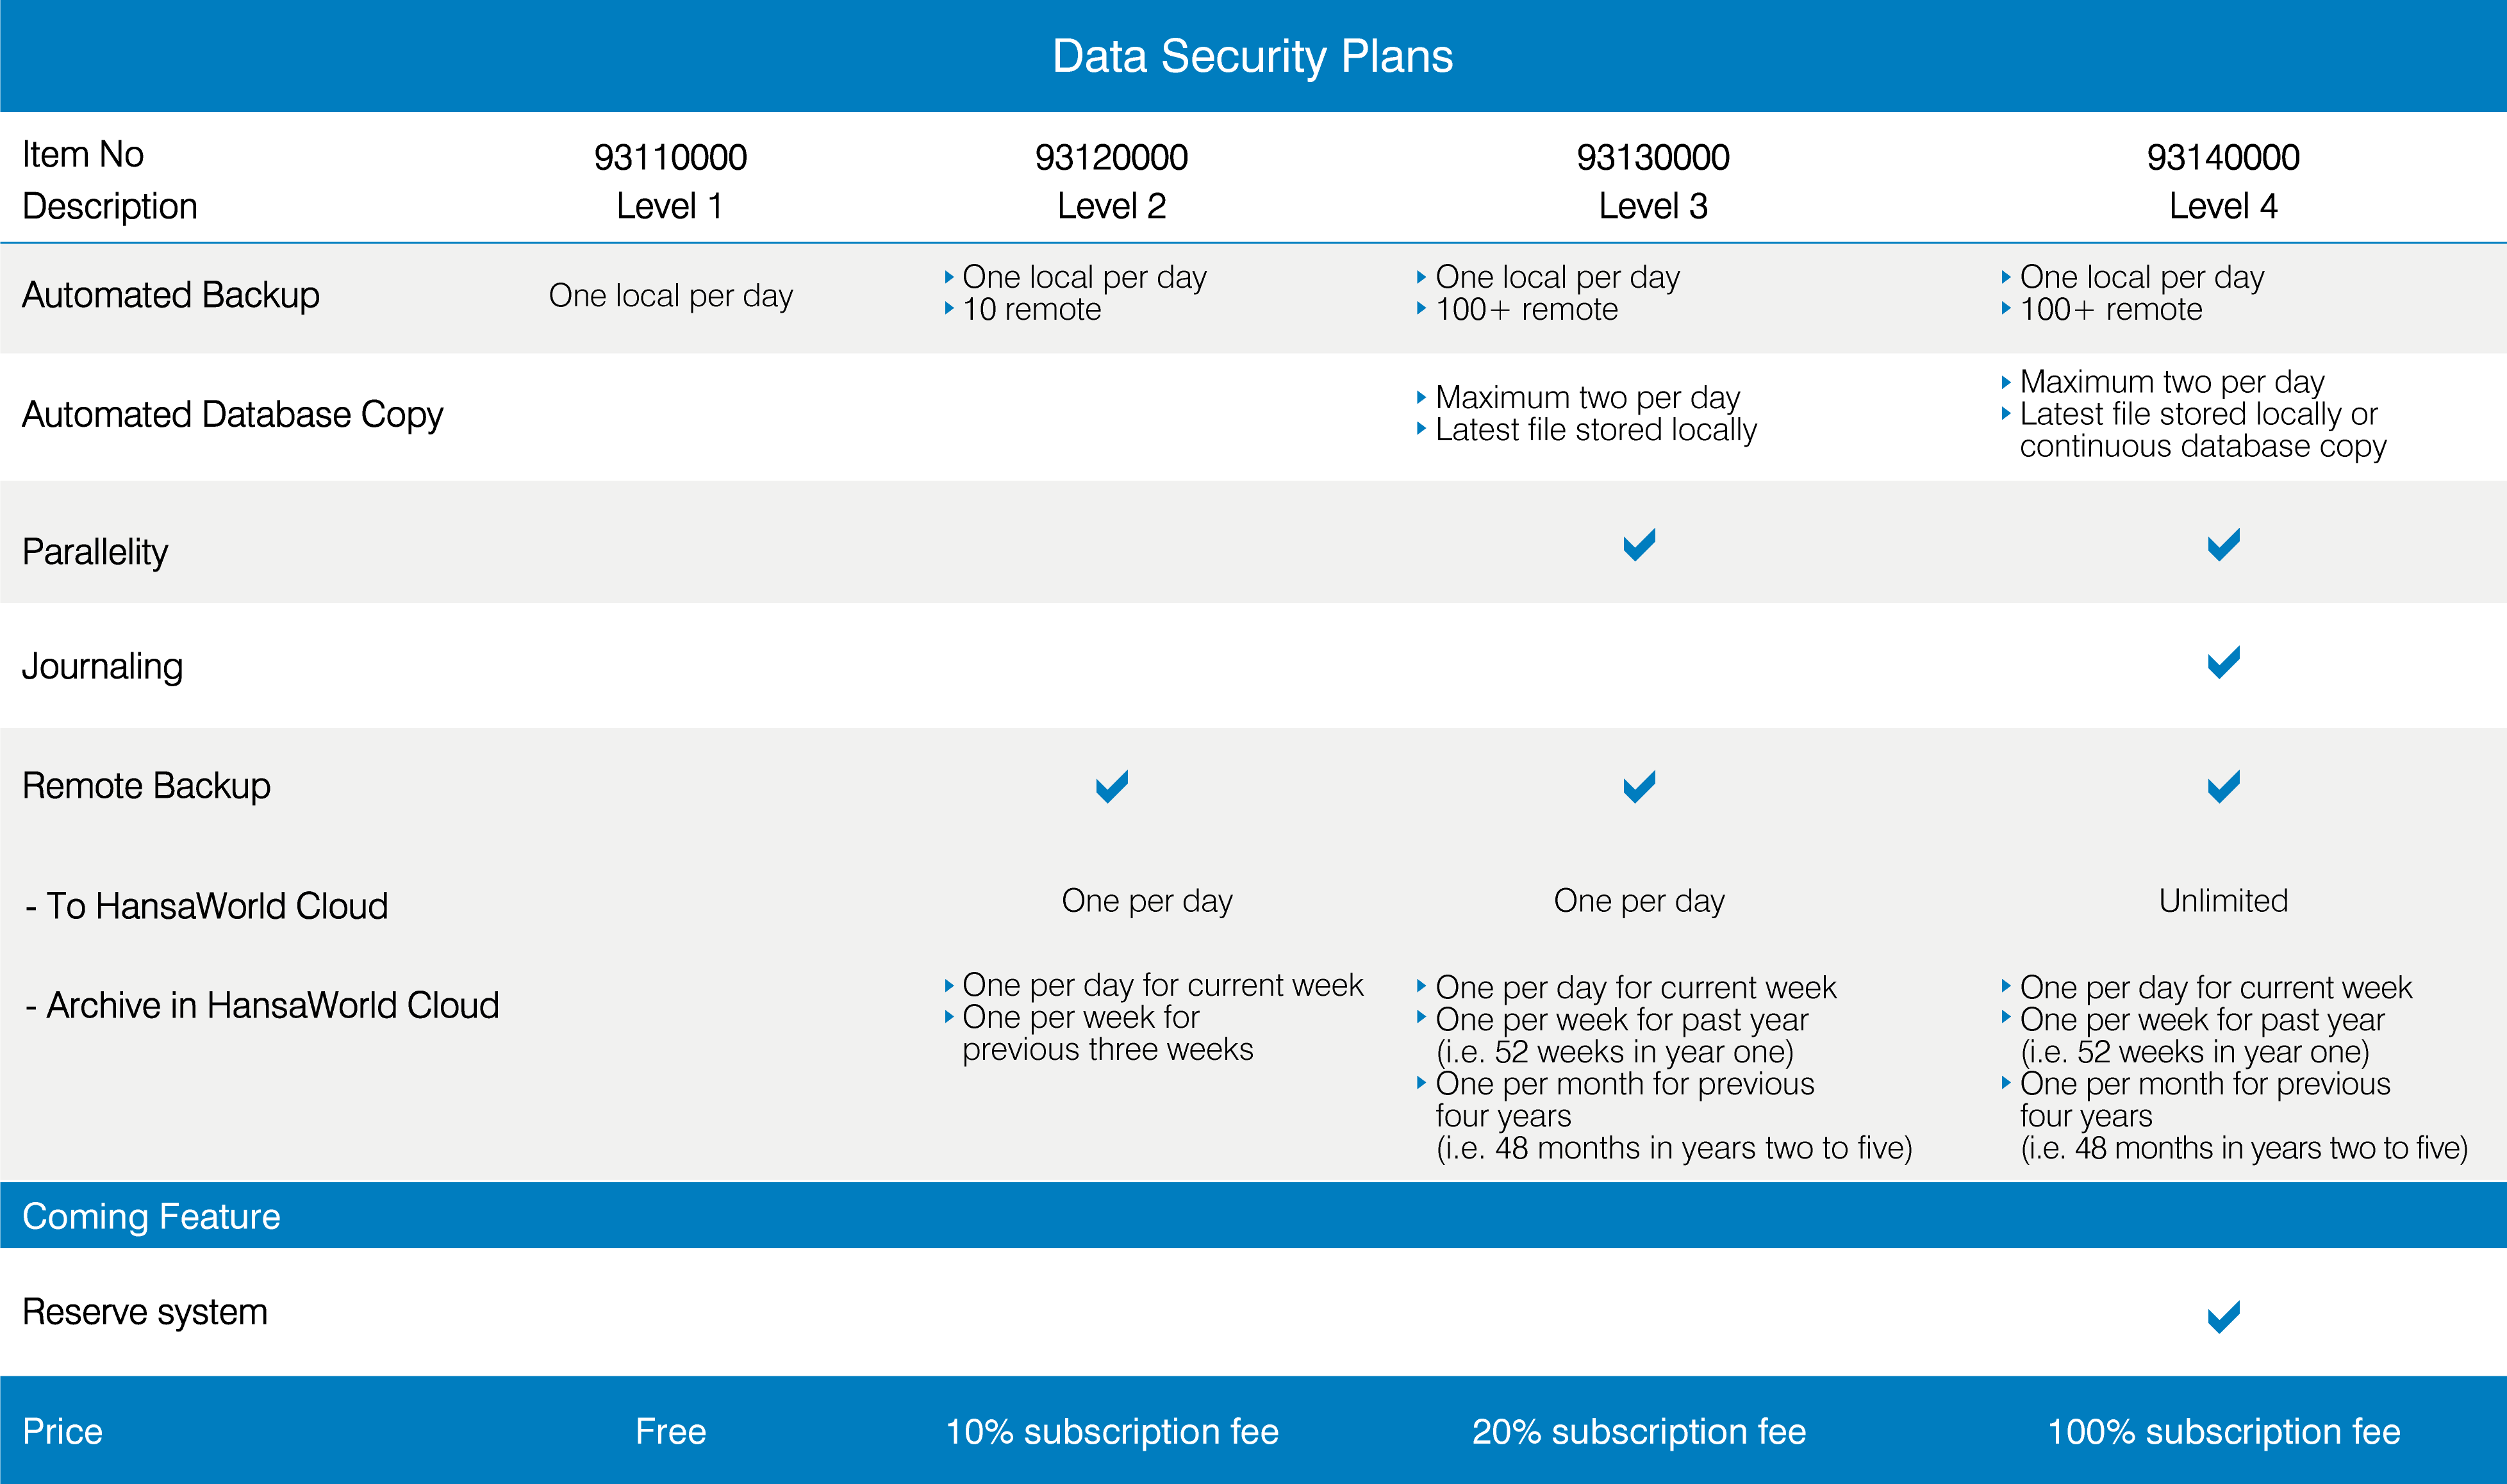 Data Security Plans